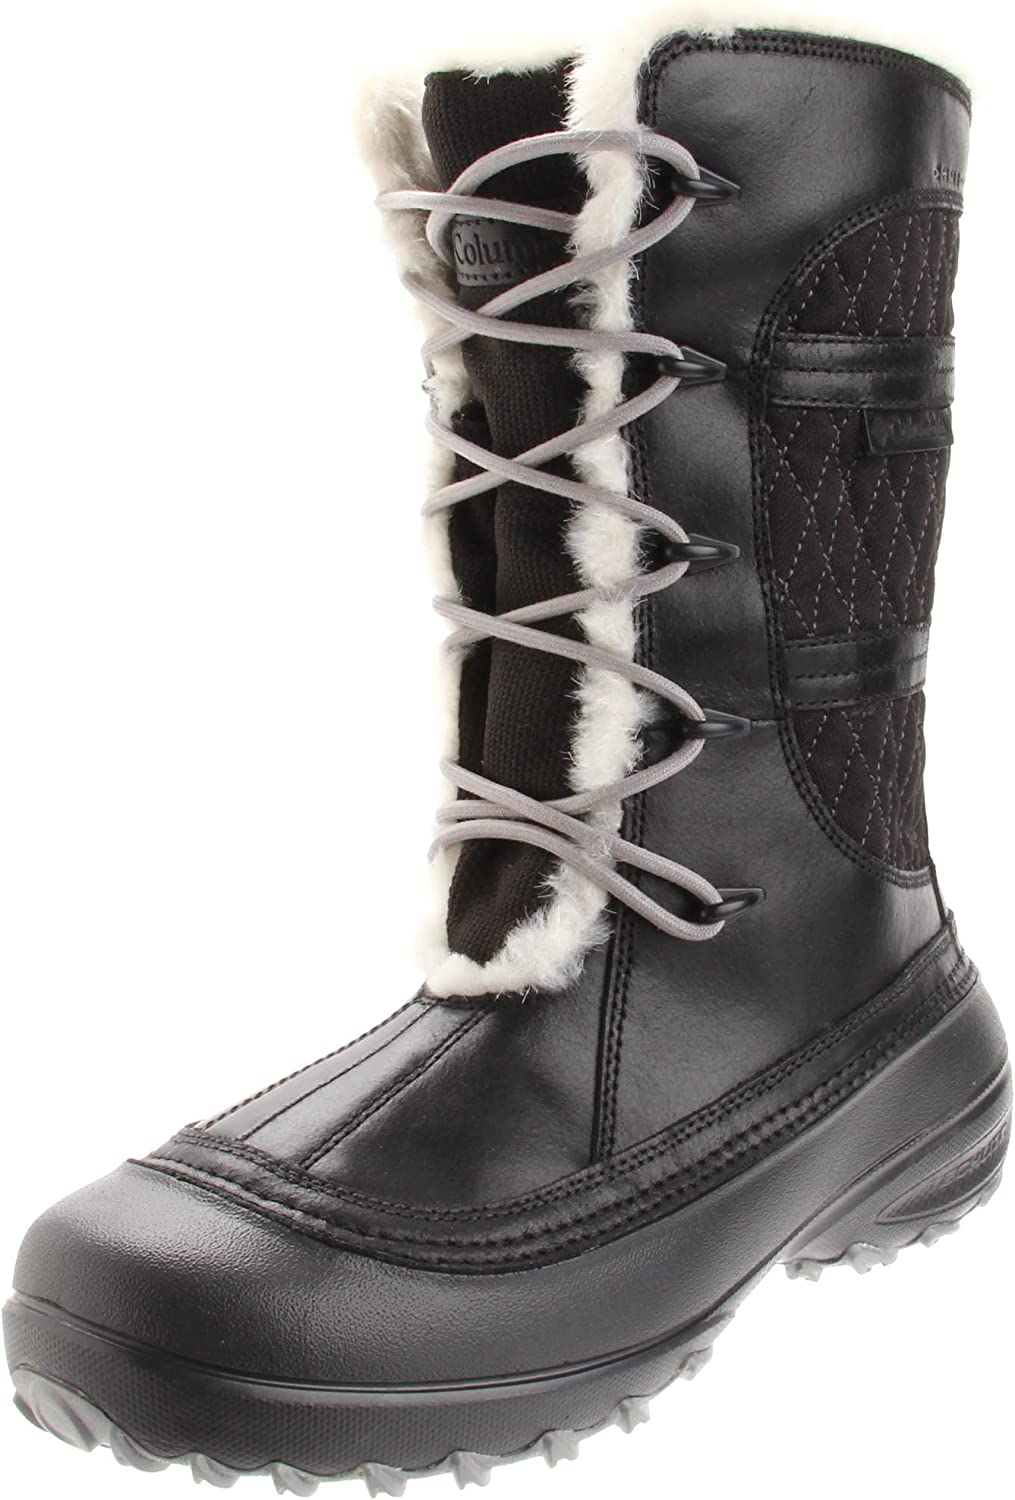 Columbia Sportswear Women's Heather Canyon Waterproof Cold Weather Boot